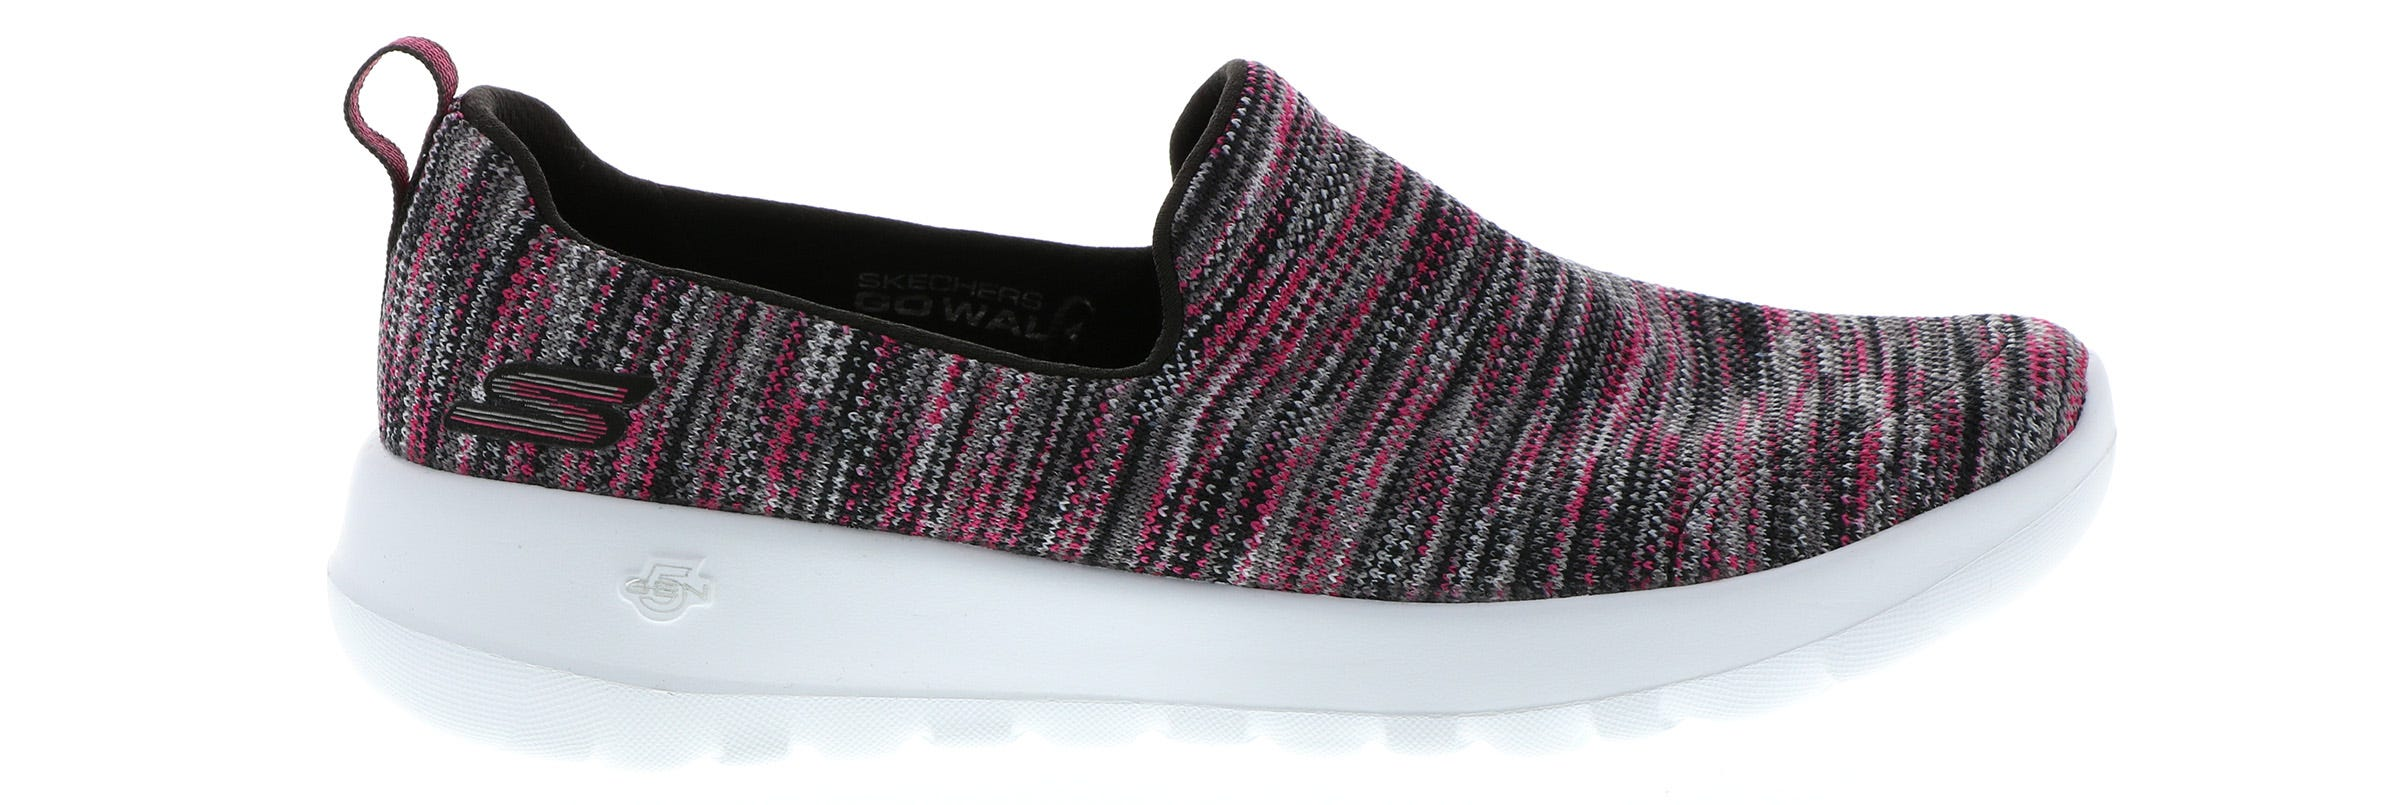 Women S Skechers Go Walk Joy 15615 Bkpk Black Shoe Sensation